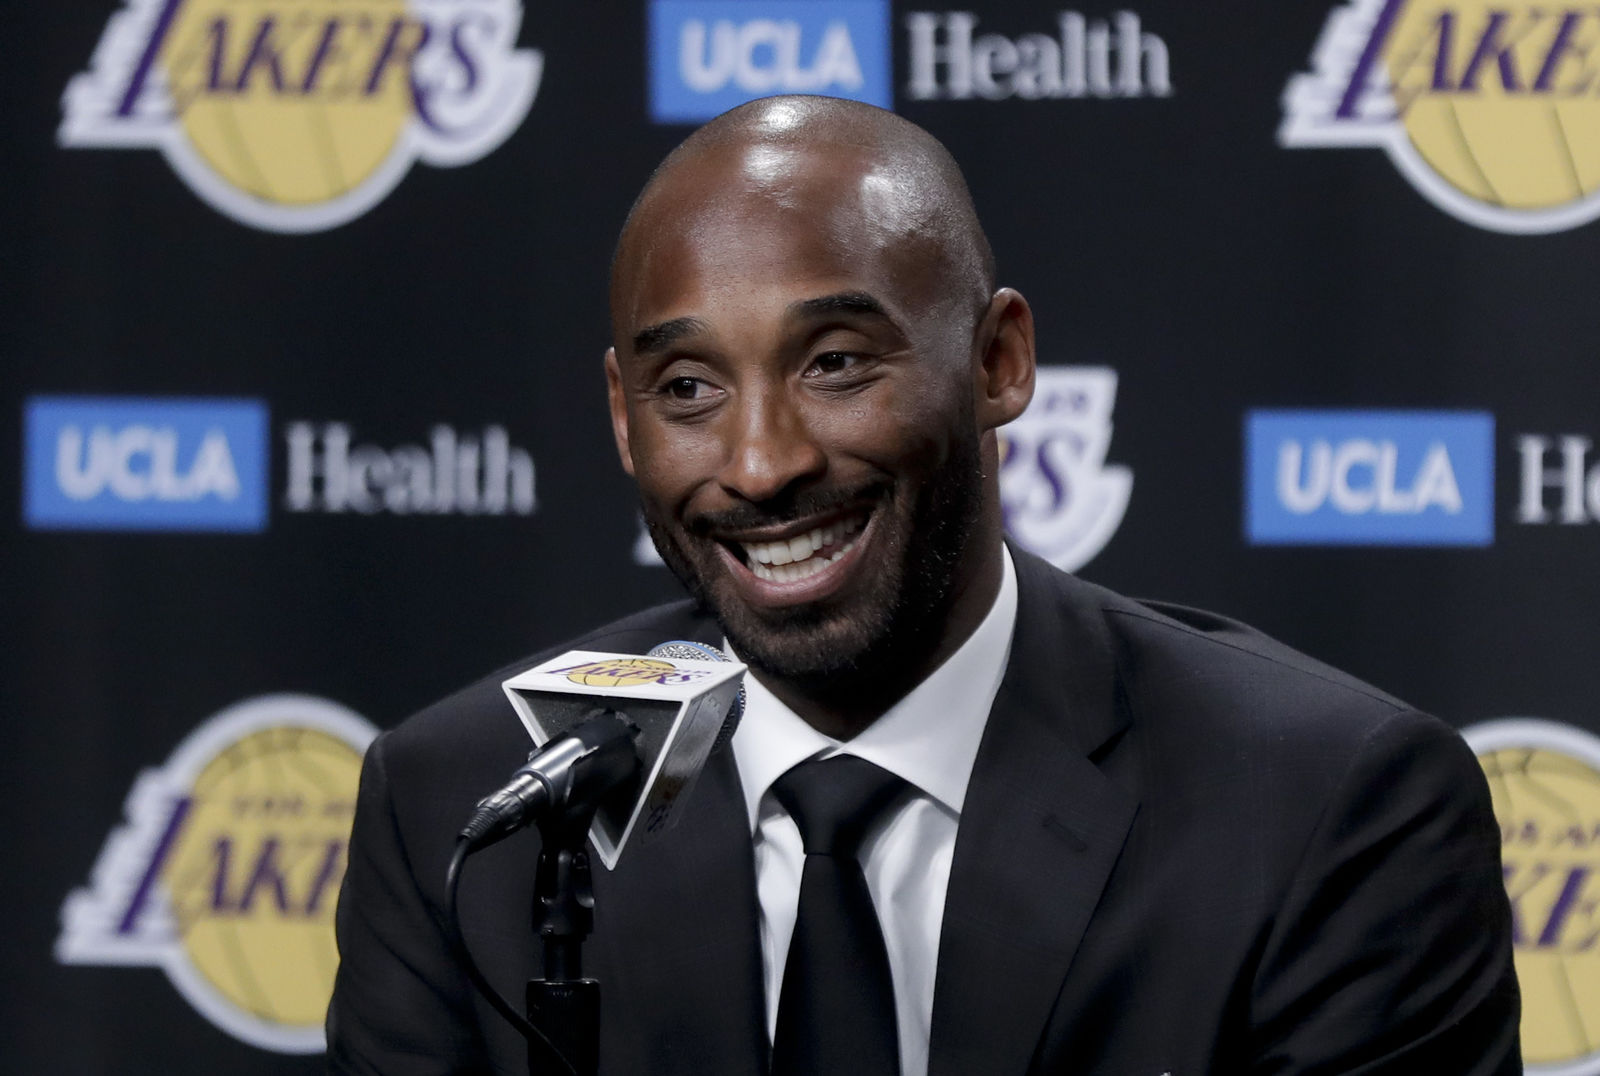 FILE - In this Dec. 18, 2017 file photo, former Los Angeles Laker Kobe Bryant talks during a news conference in Los Angeles. (AP Photo/Chris Carlson, File)